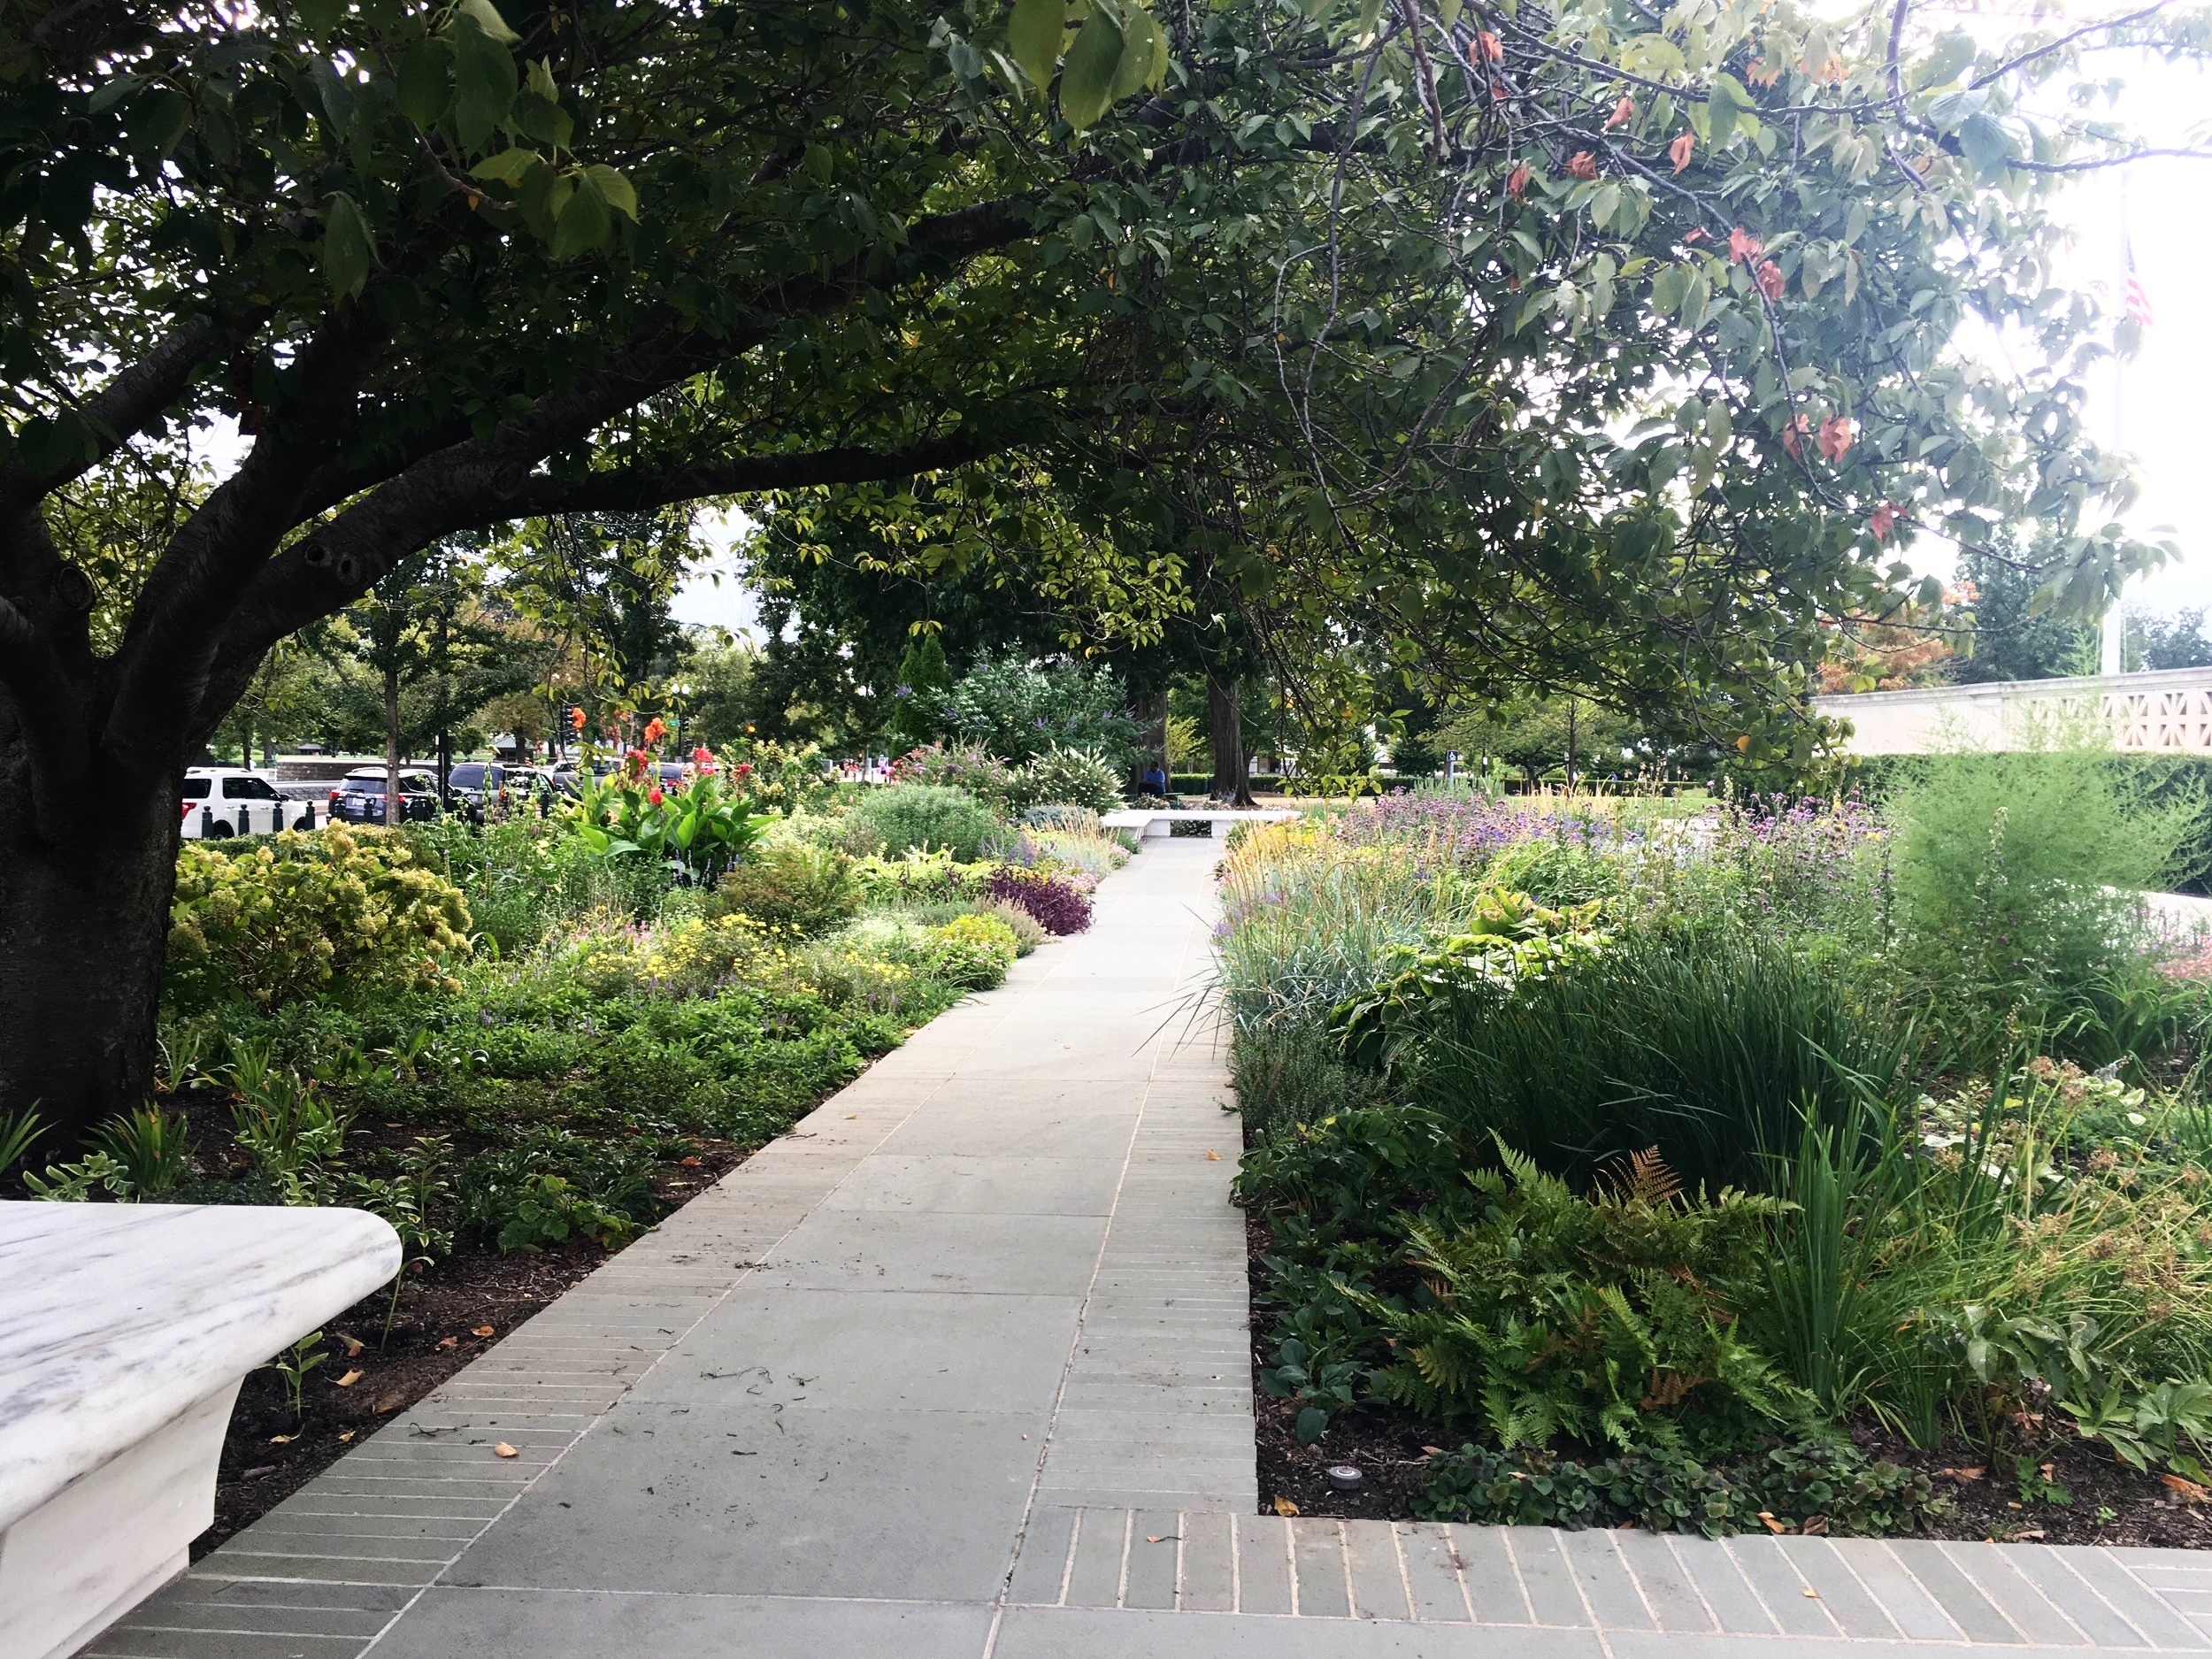 Beautiful garden at the Hart Senate Building in Washington D.C.